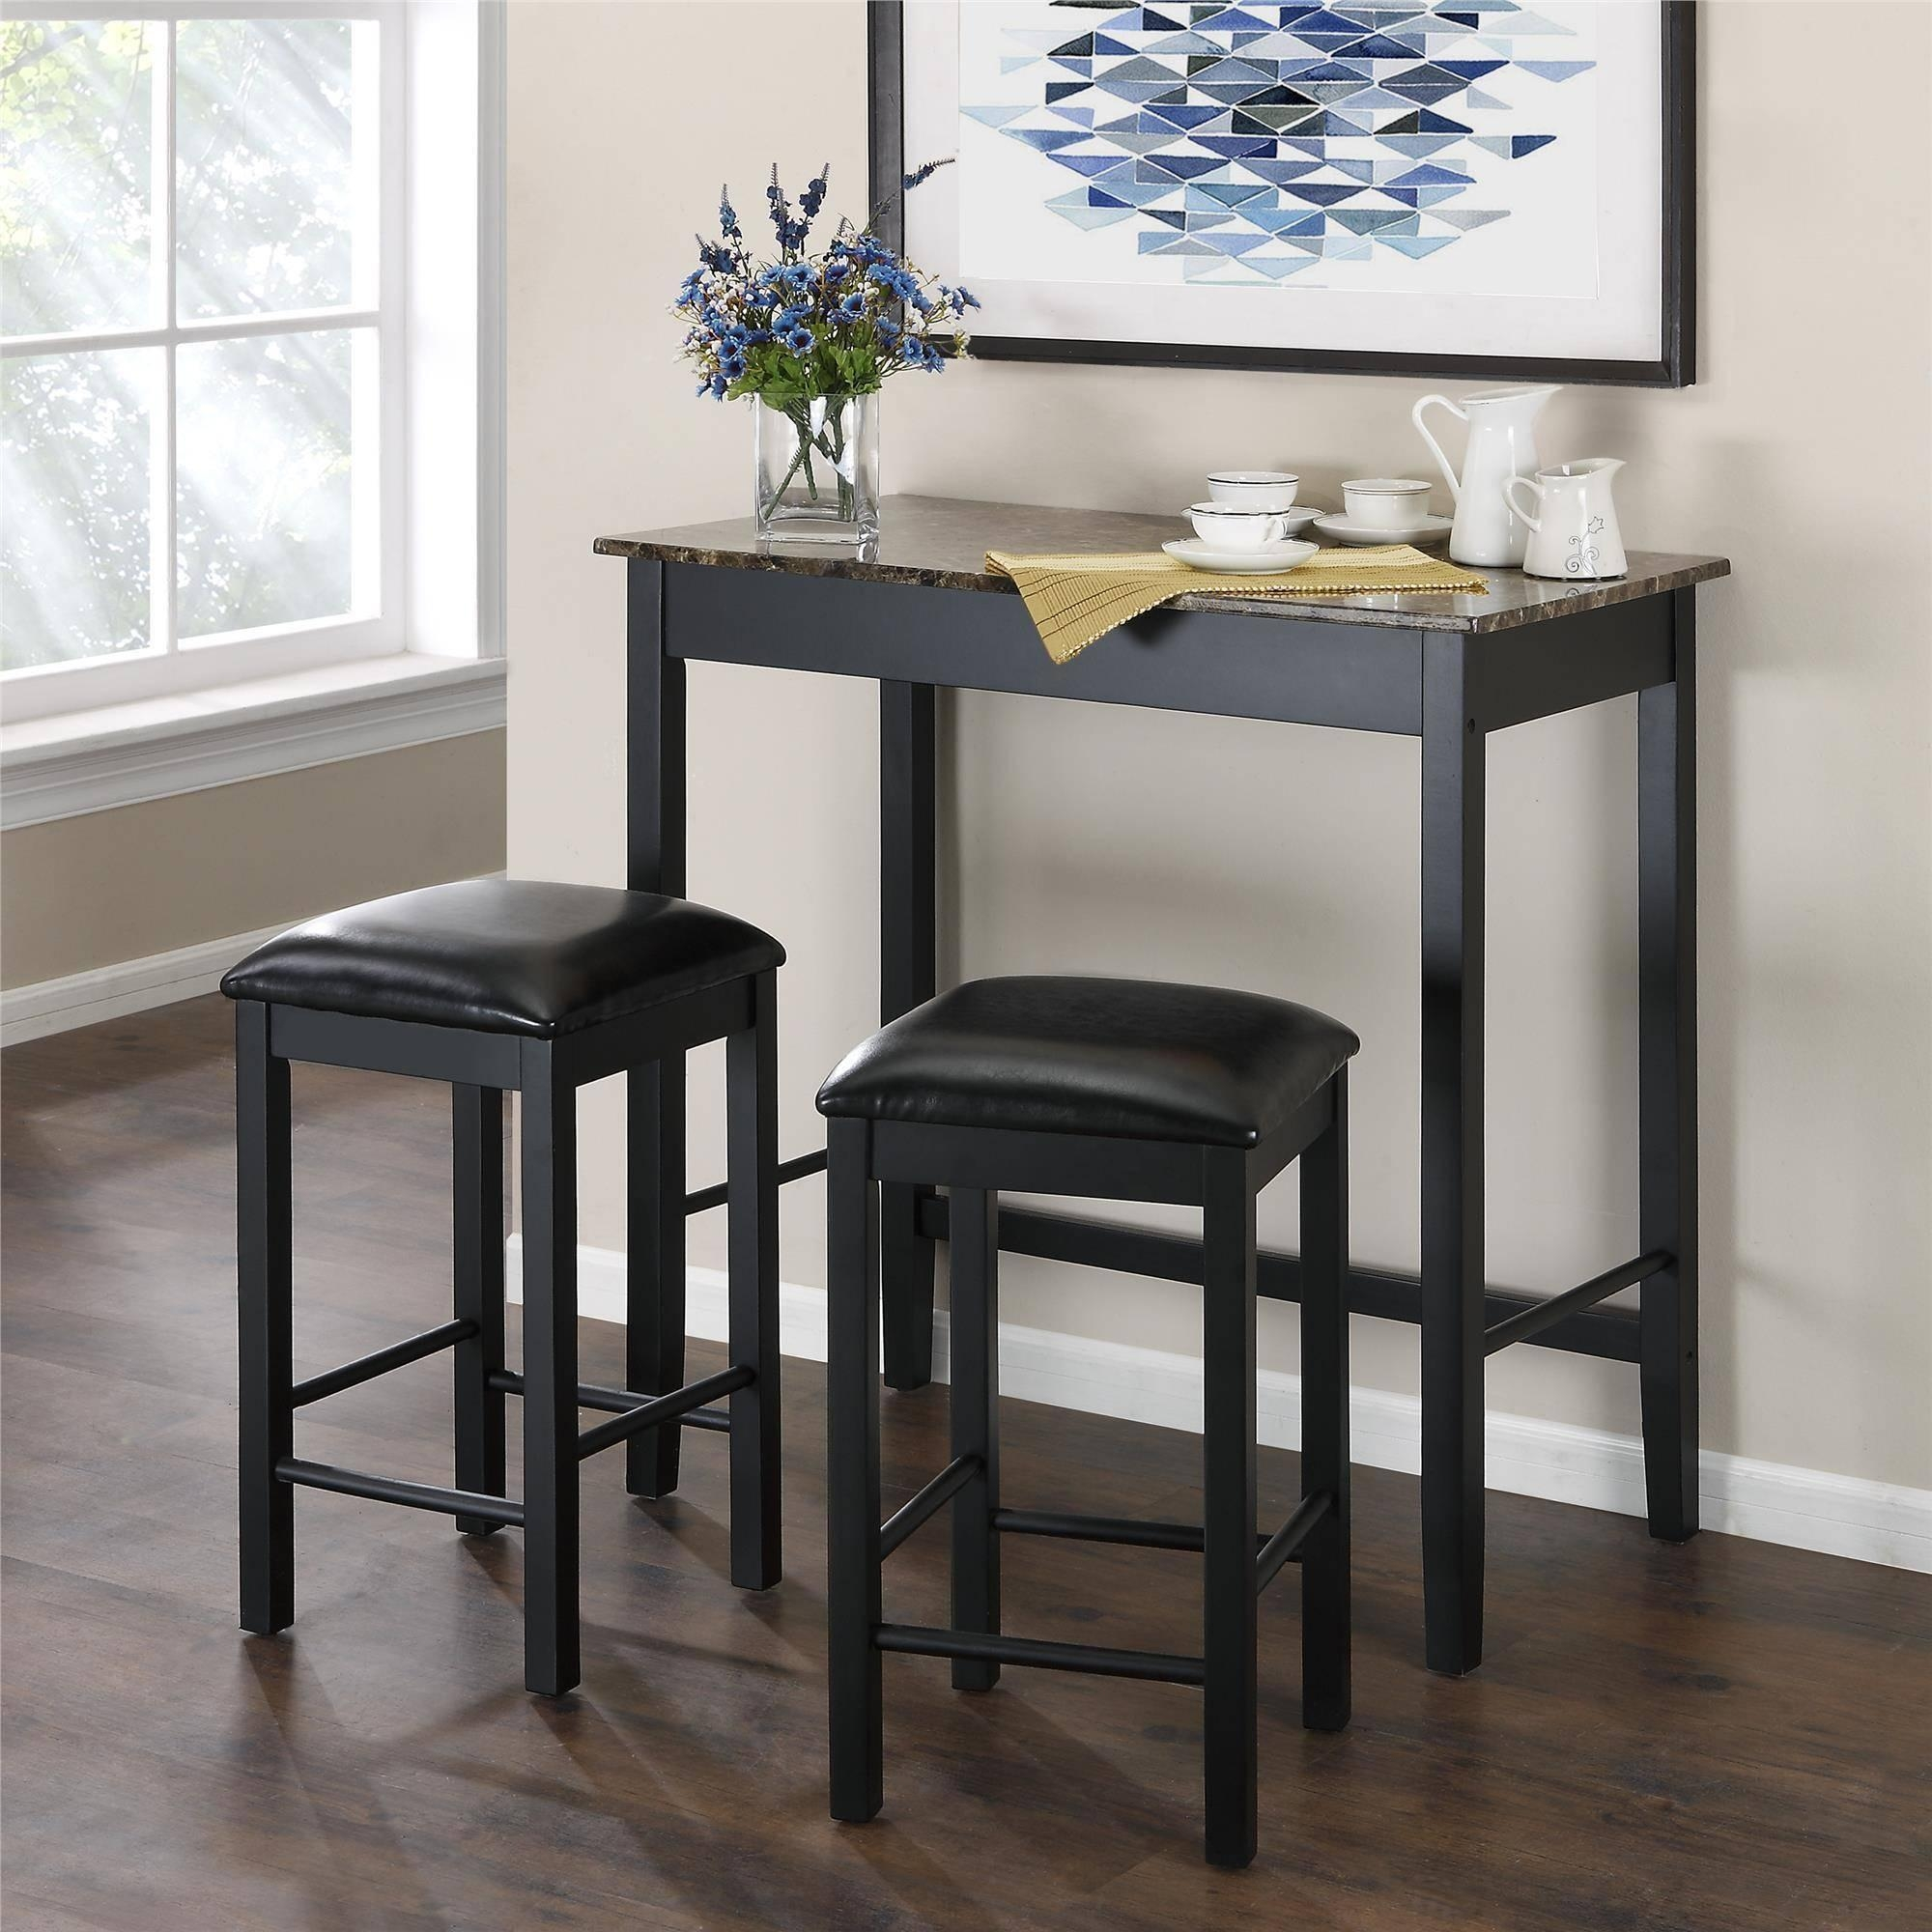 Dorel Living Devyn 3 Piece Faux Marble Pub Dining Set, Black Intended For Sofa Table With Chairs (Image 12 of 20)